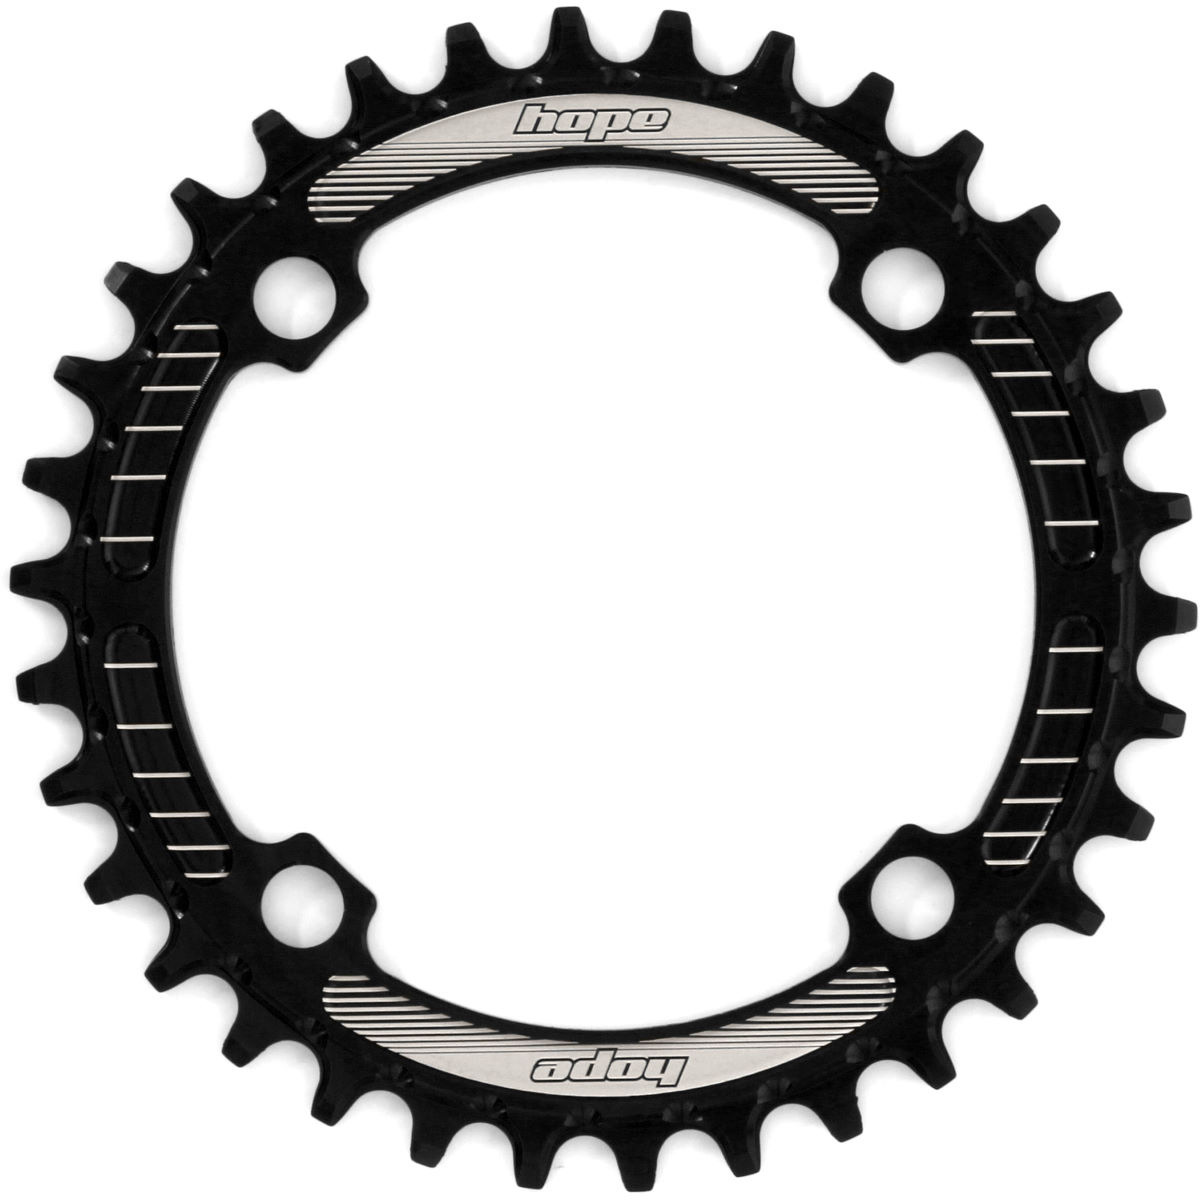 Hope Hope Retainer Narrow/Wide Chainring   Chain Rings